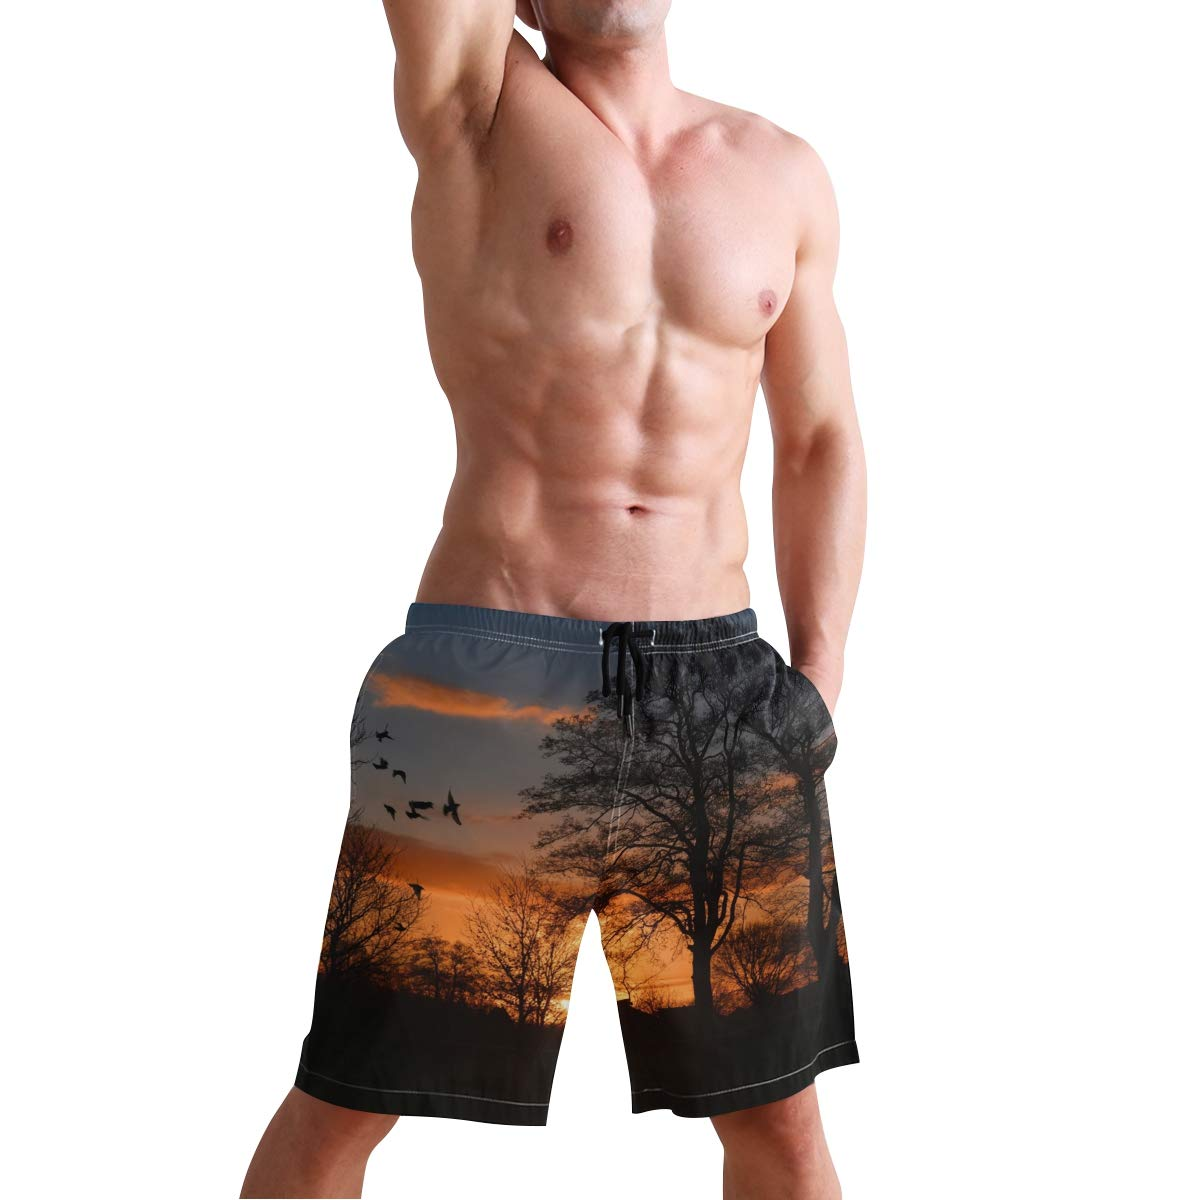 Mens Beach Swim Trunks Sunrise Bird Tree Boxer Swimsuit Underwear Board Shorts with Pocket